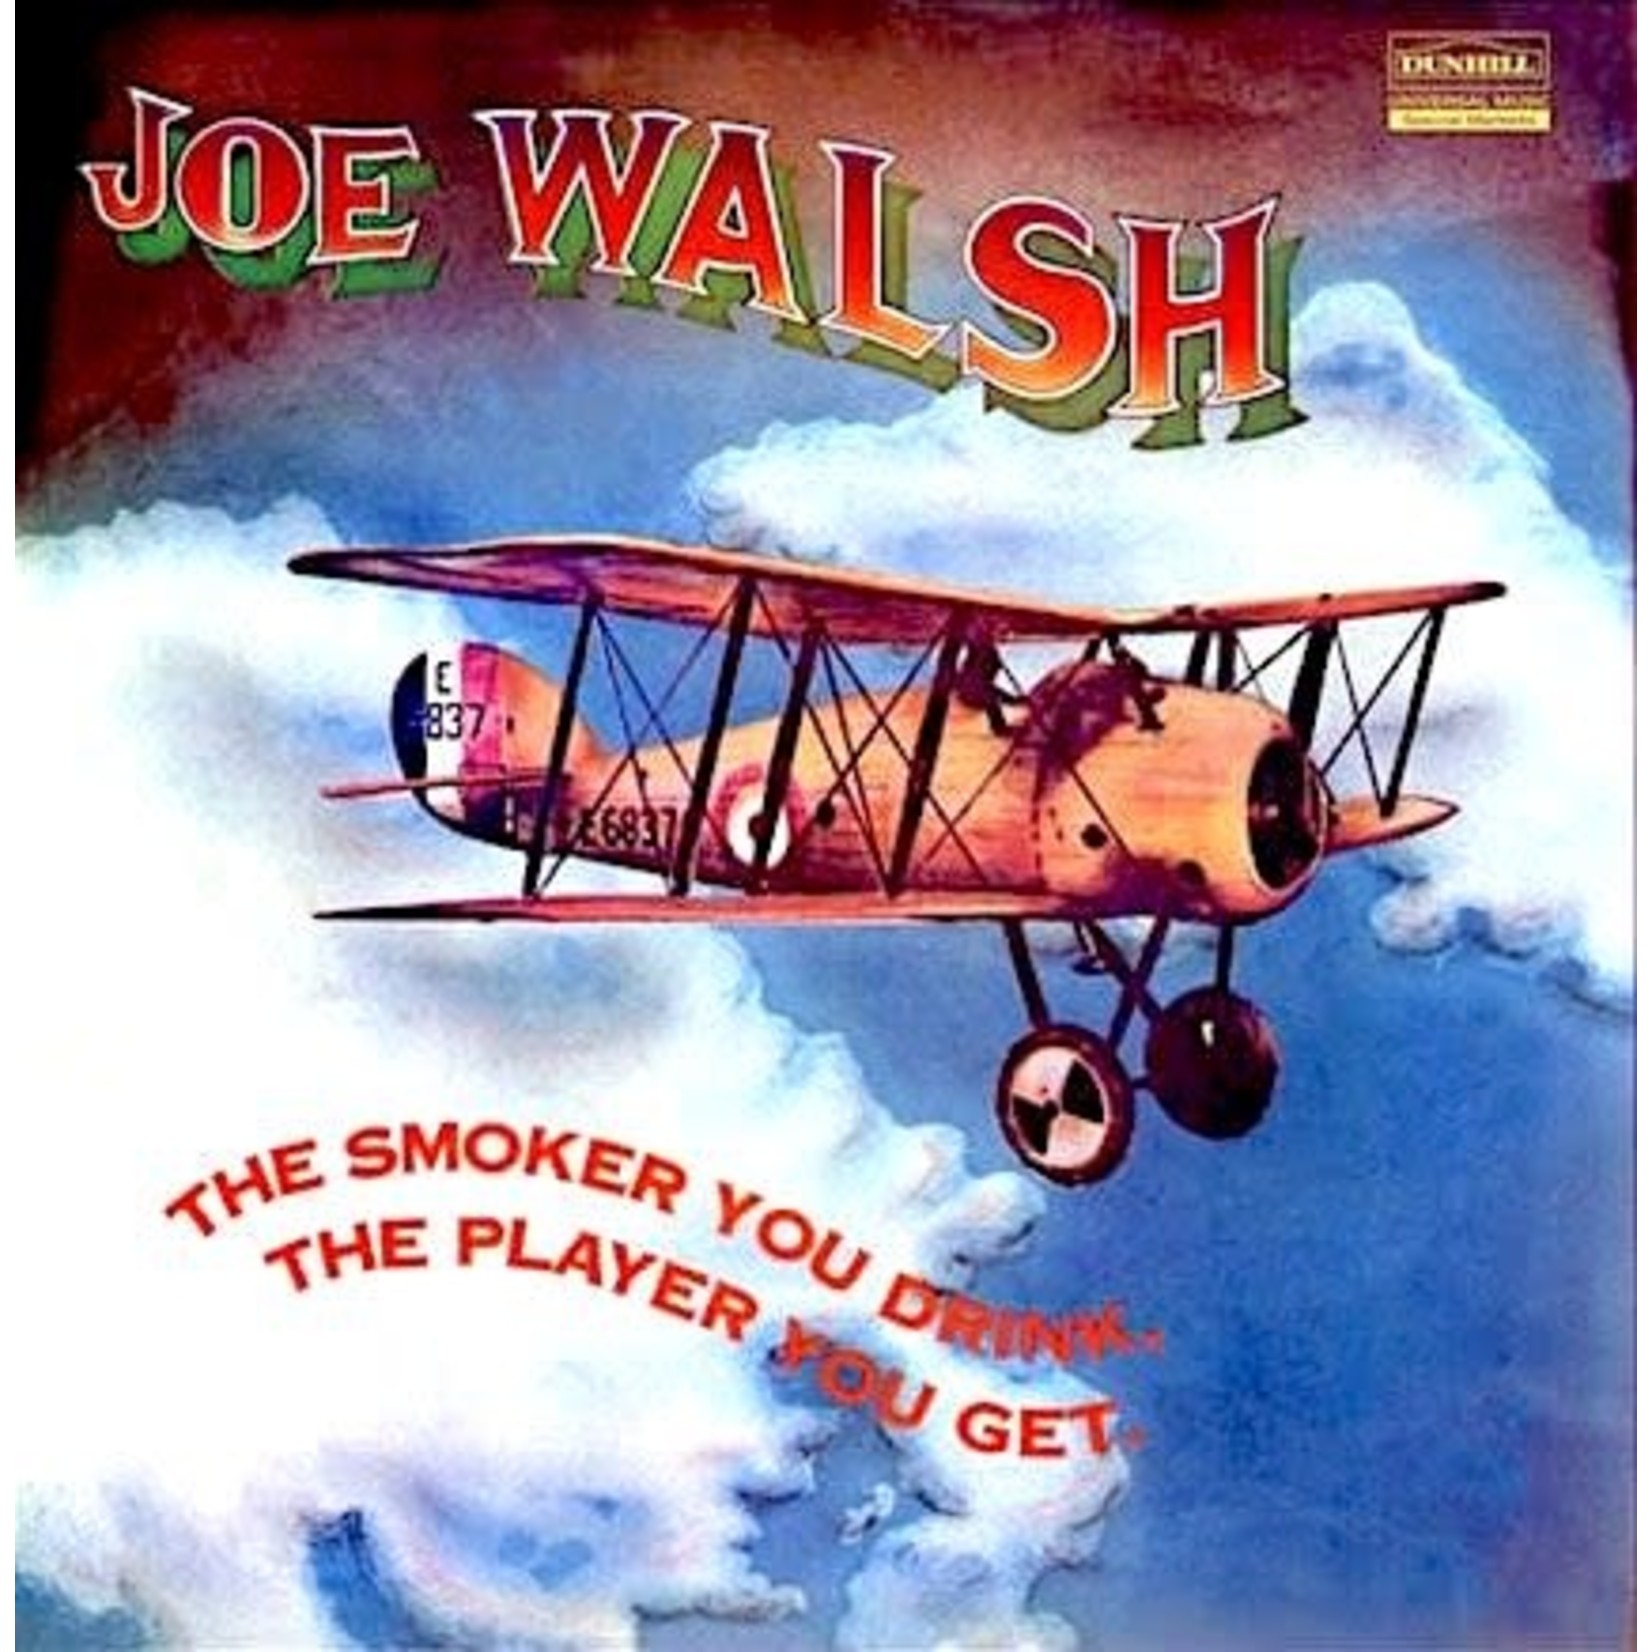 [Vintage] Walsh, Joe: The Smoker You Drink, the Player You Get